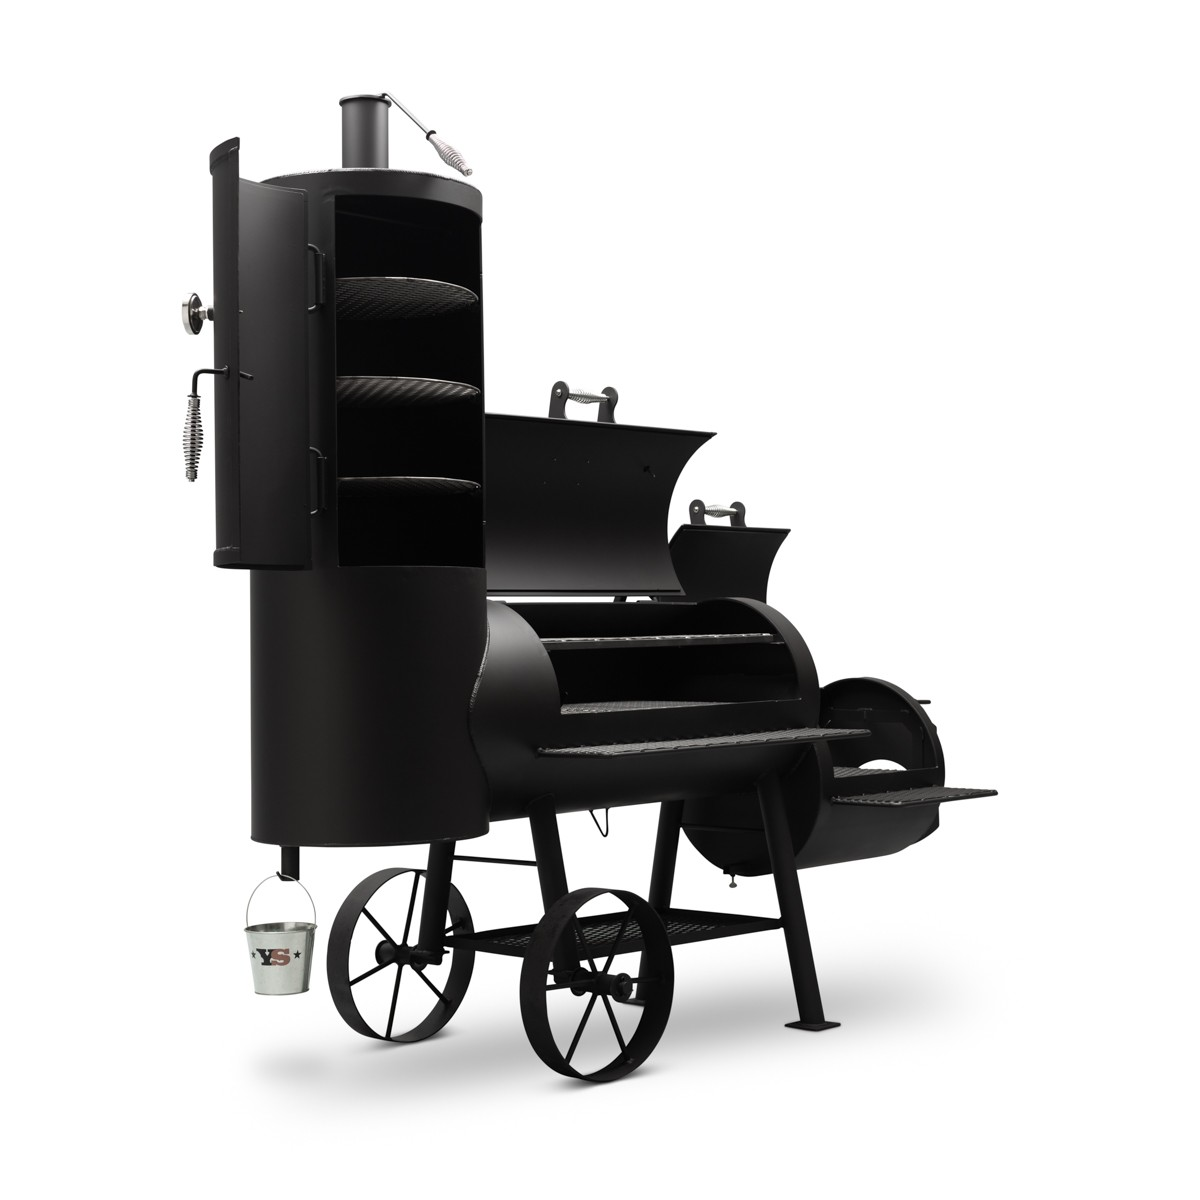 "Yoder Smokers 20"" Loaded Durango Offset Smoker"